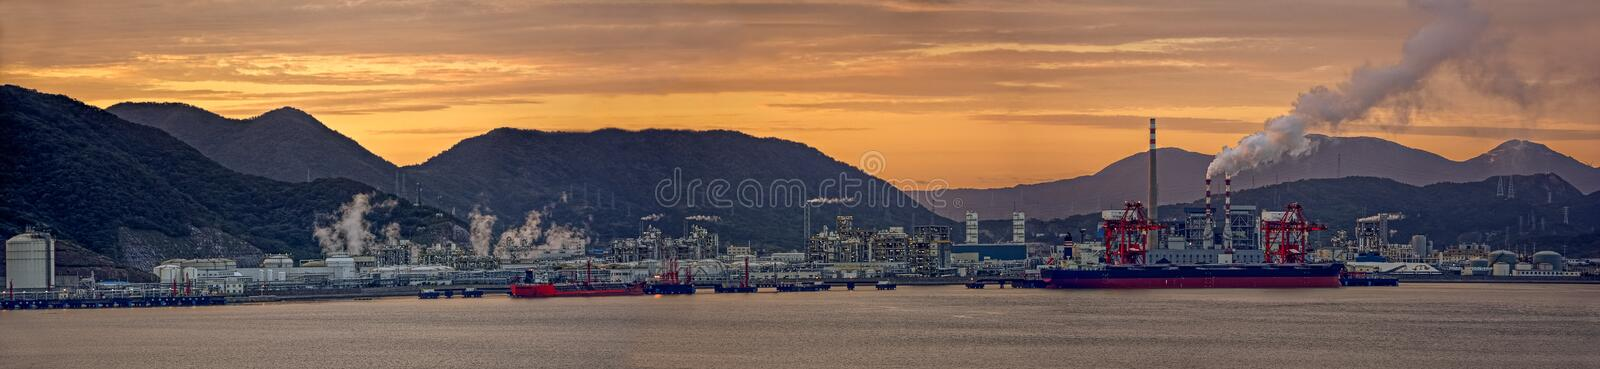 Oil refinery plant at sunset stock photos